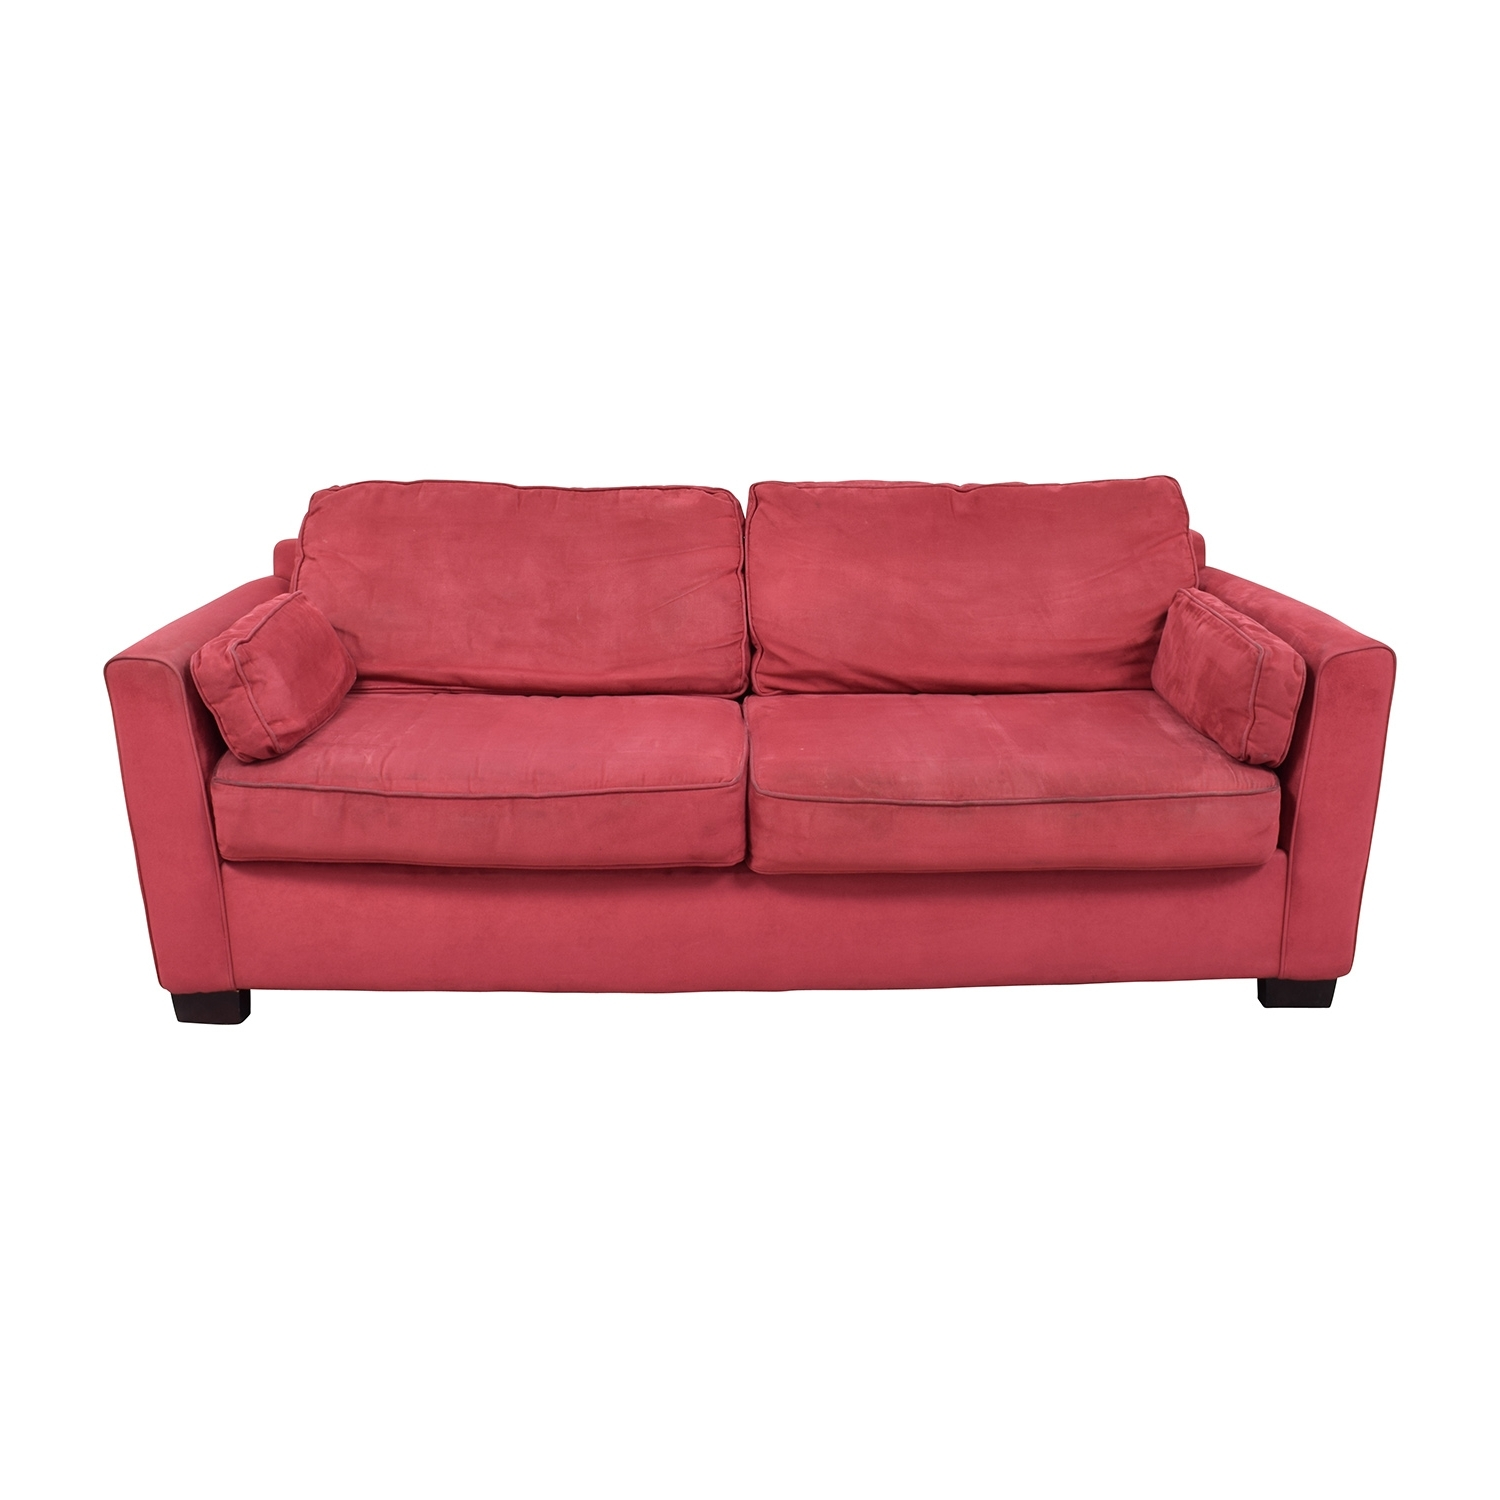 [%90% Off – Bloomingdales Bloomingdale's Classic Low Profile Red Pertaining To Most Up To Date Low Sofas|Low Sofas Within Recent 90% Off – Bloomingdales Bloomingdale's Classic Low Profile Red|Well Liked Low Sofas Throughout 90% Off – Bloomingdales Bloomingdale's Classic Low Profile Red|Favorite 90% Off – Bloomingdales Bloomingdale's Classic Low Profile Red With Regard To Low Sofas%] (View 1 of 20)